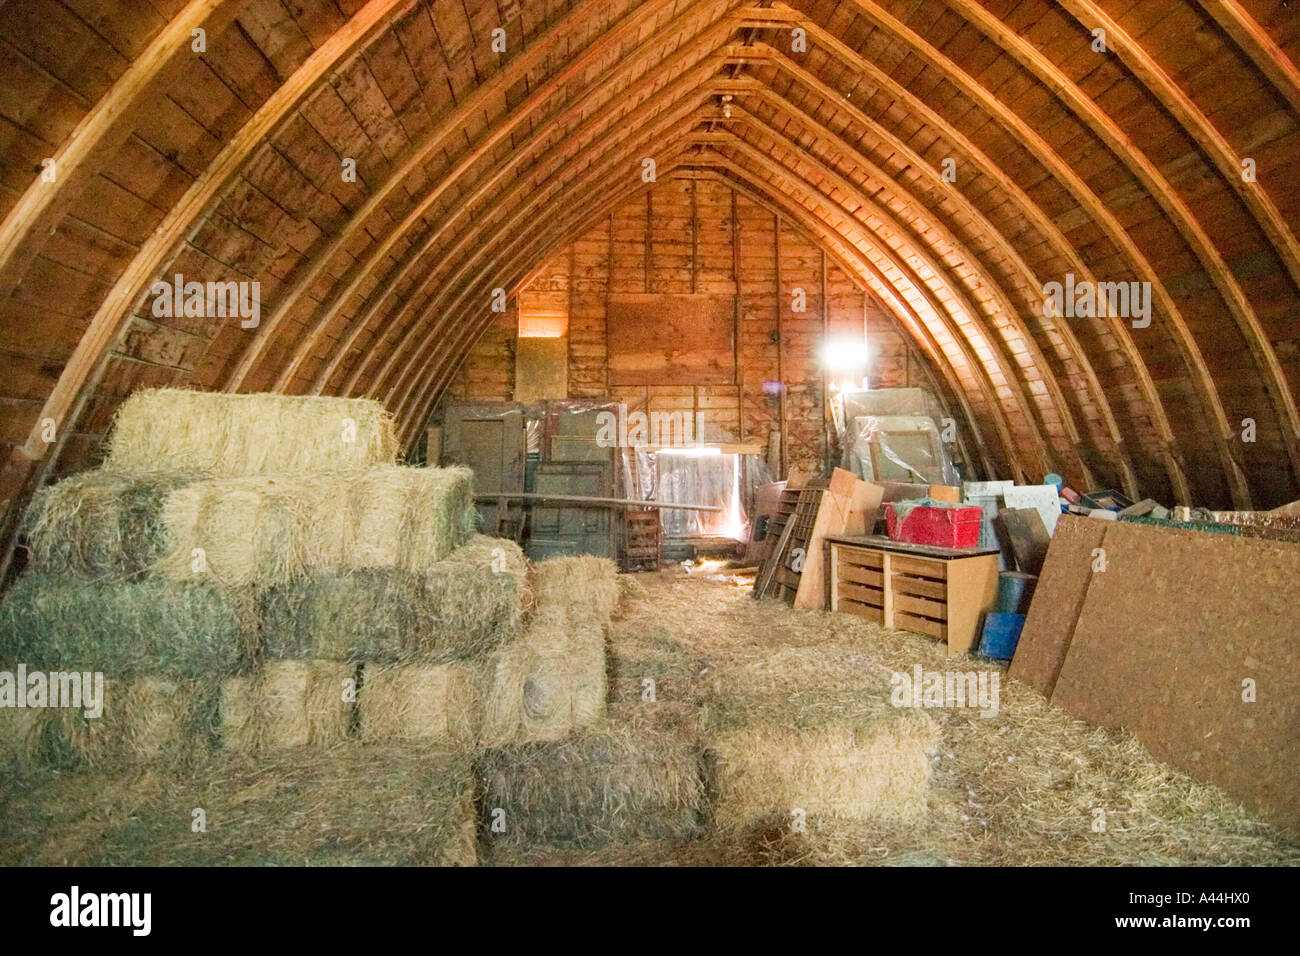 inside an old hip roof barn on the prairies of saskatchewan stock inside an old hip roof barn on the prairies of saskatchewan